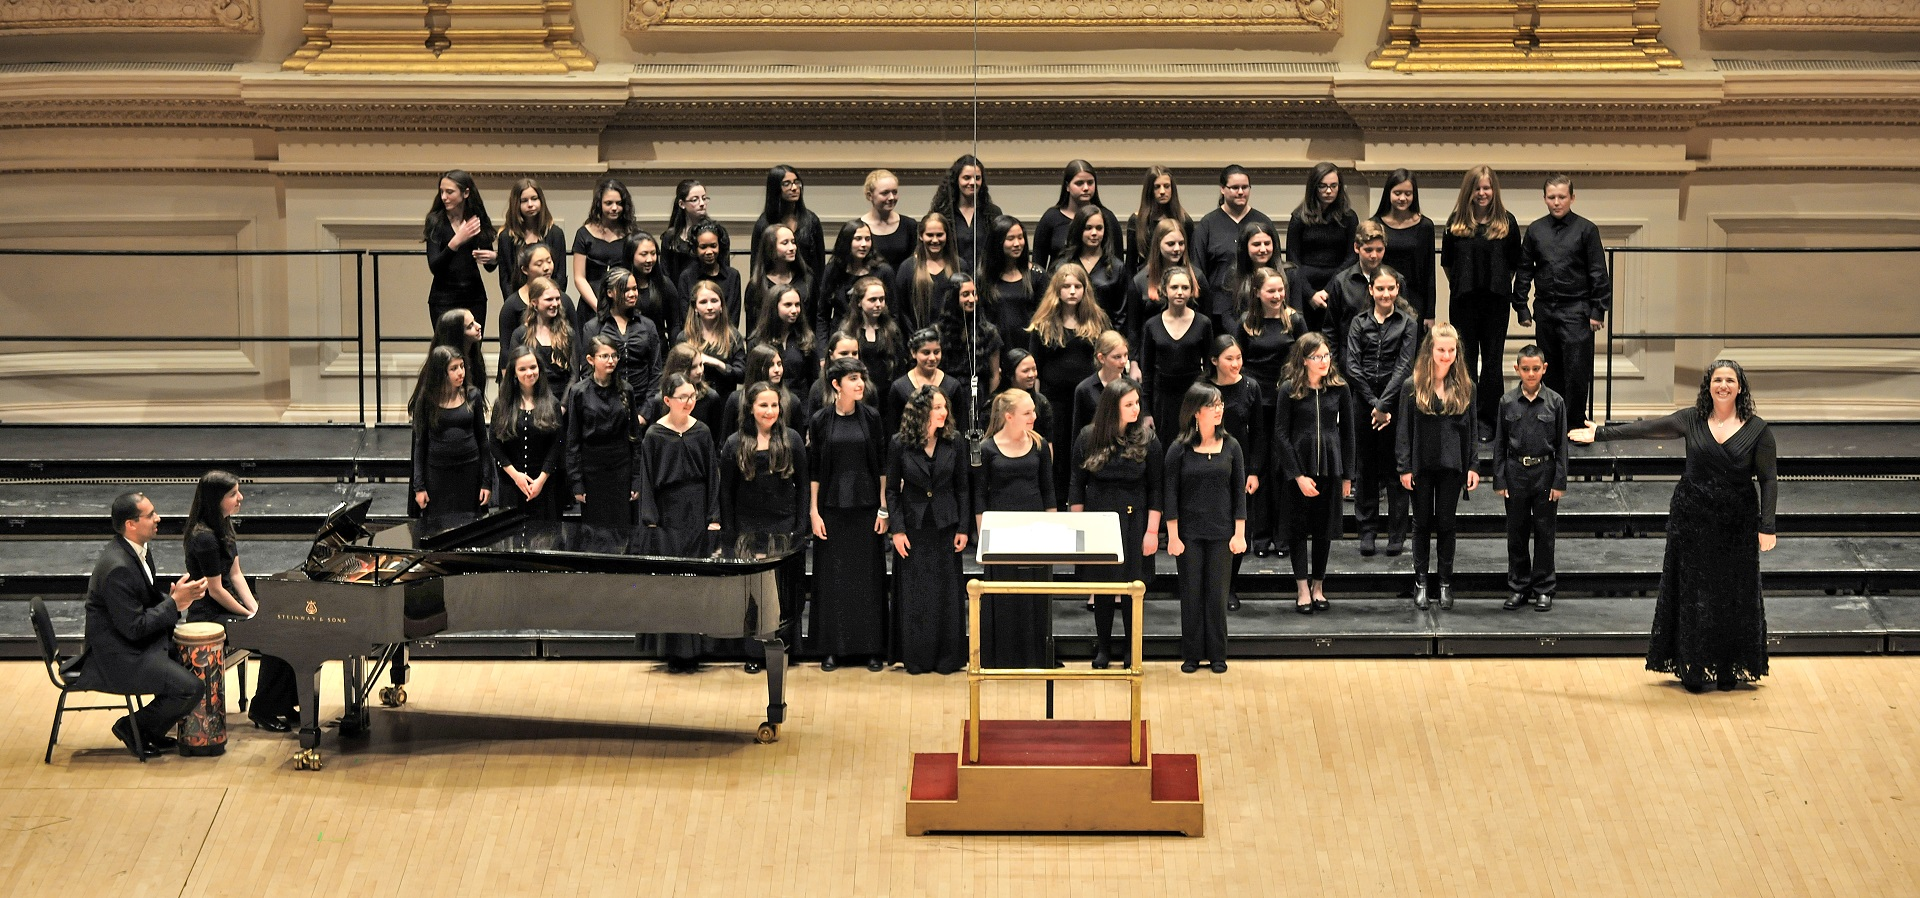 7.-Nassau-Concert-Choir